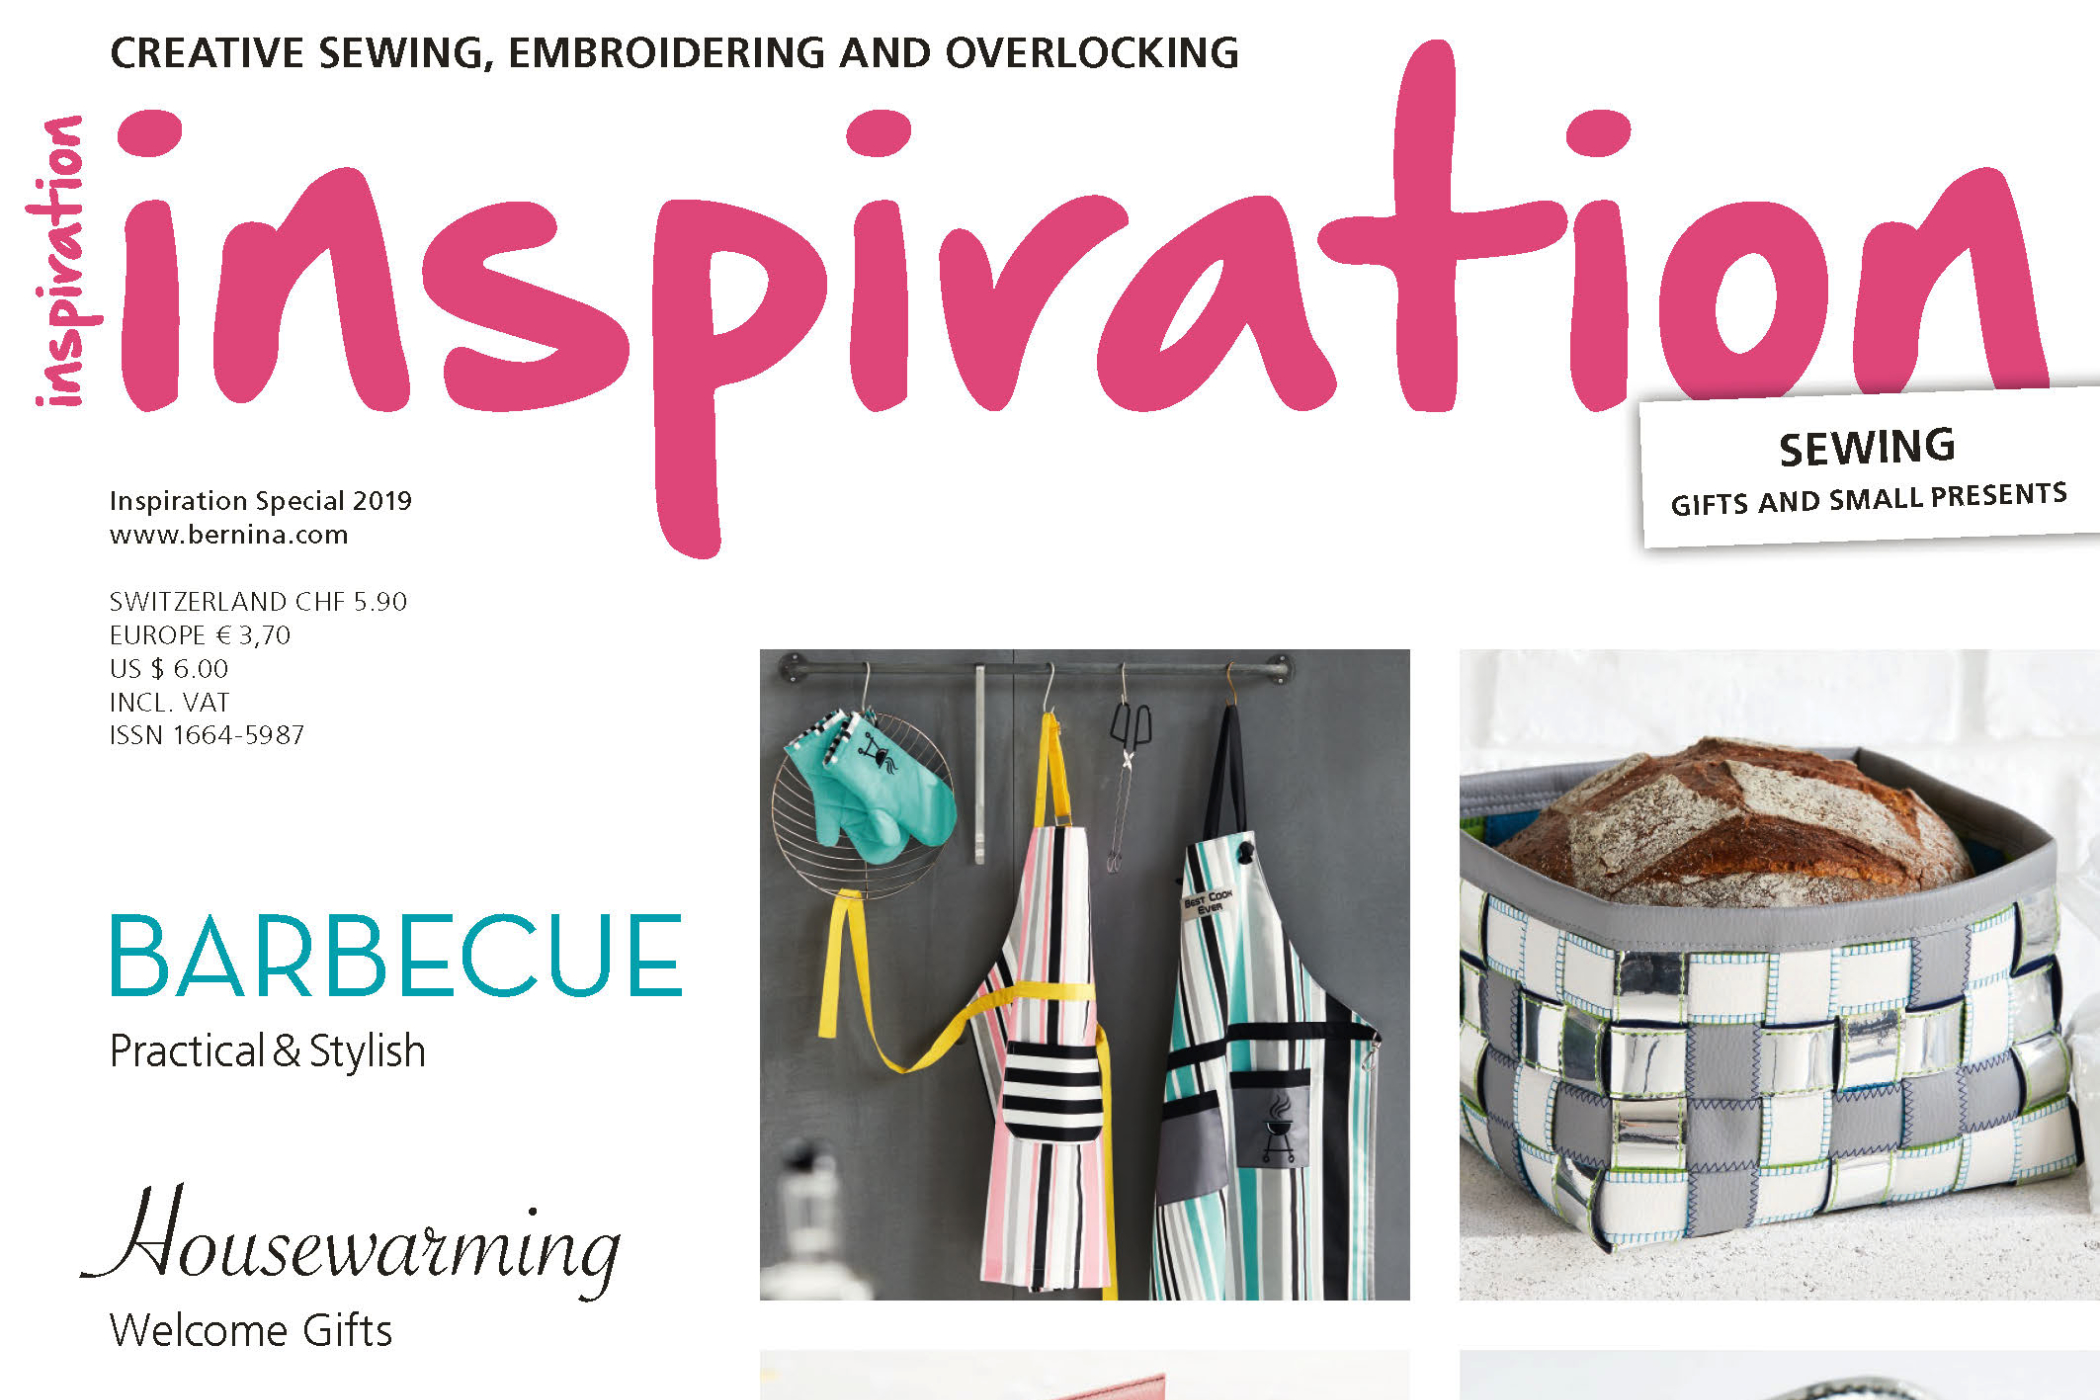 Inspiration Special Gifts and small presents